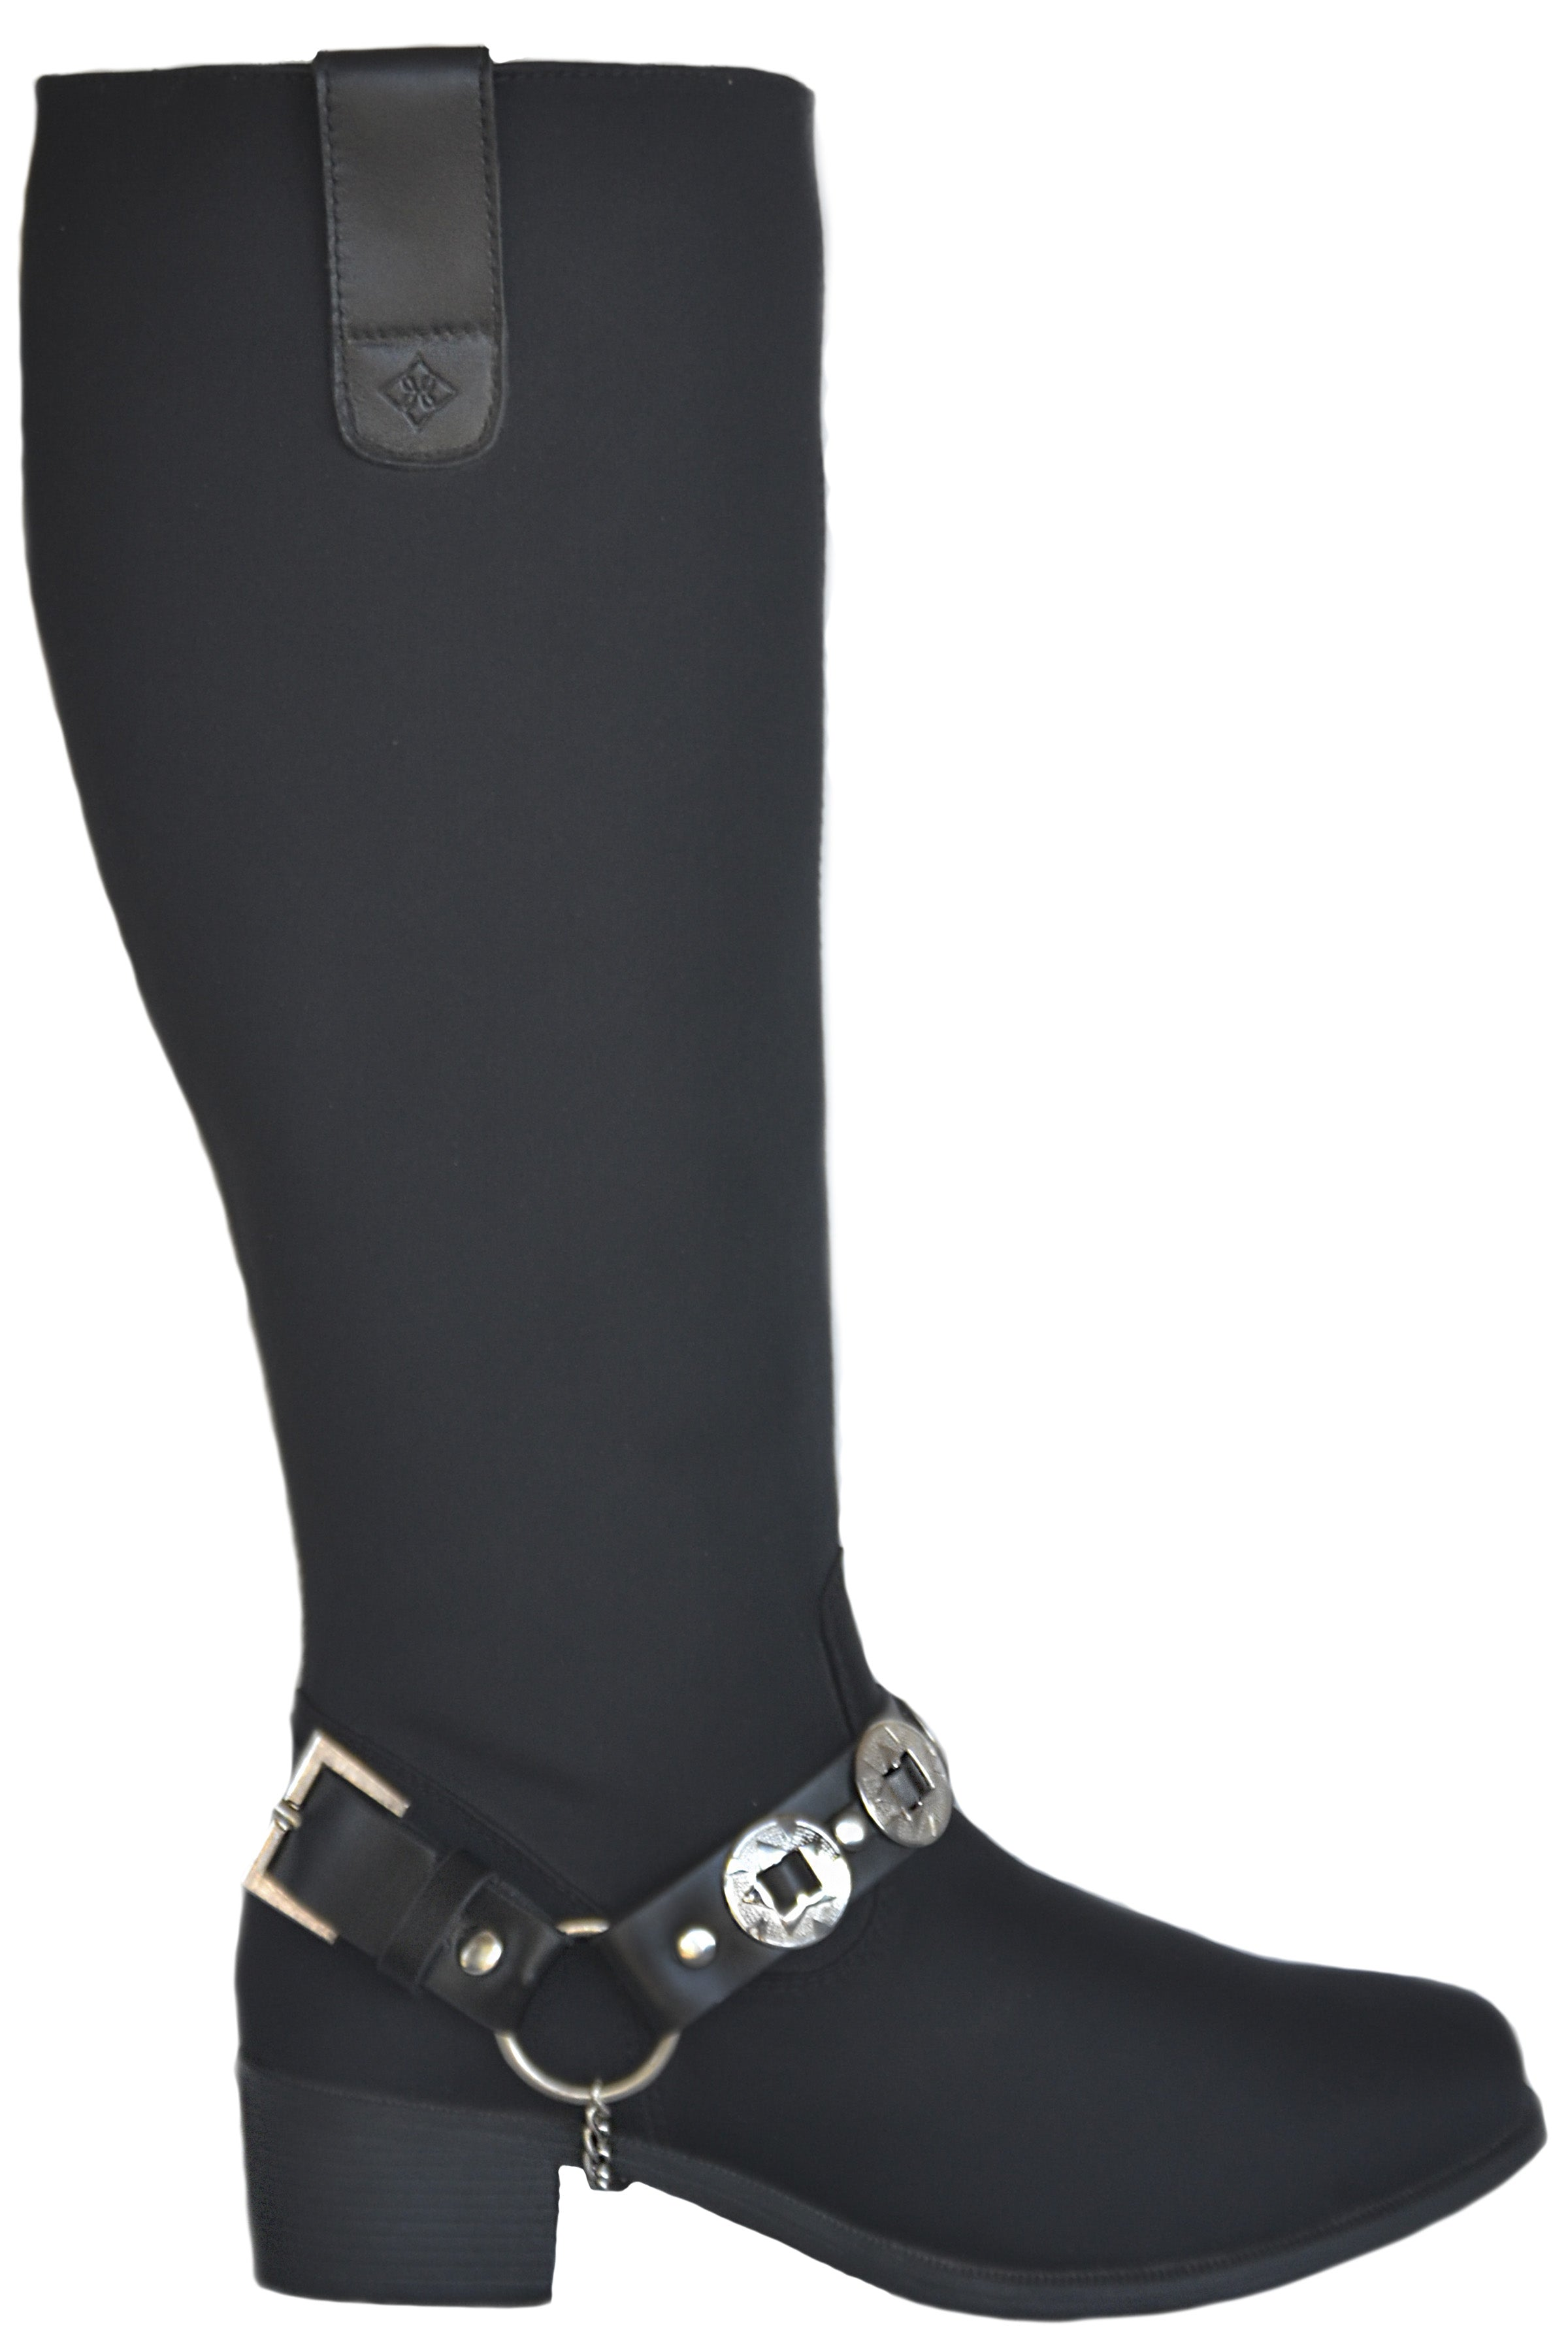 MANHATTAN BREATHABLE WATERPROOF NYLON TALL BOOT WITH CONCHO BELT